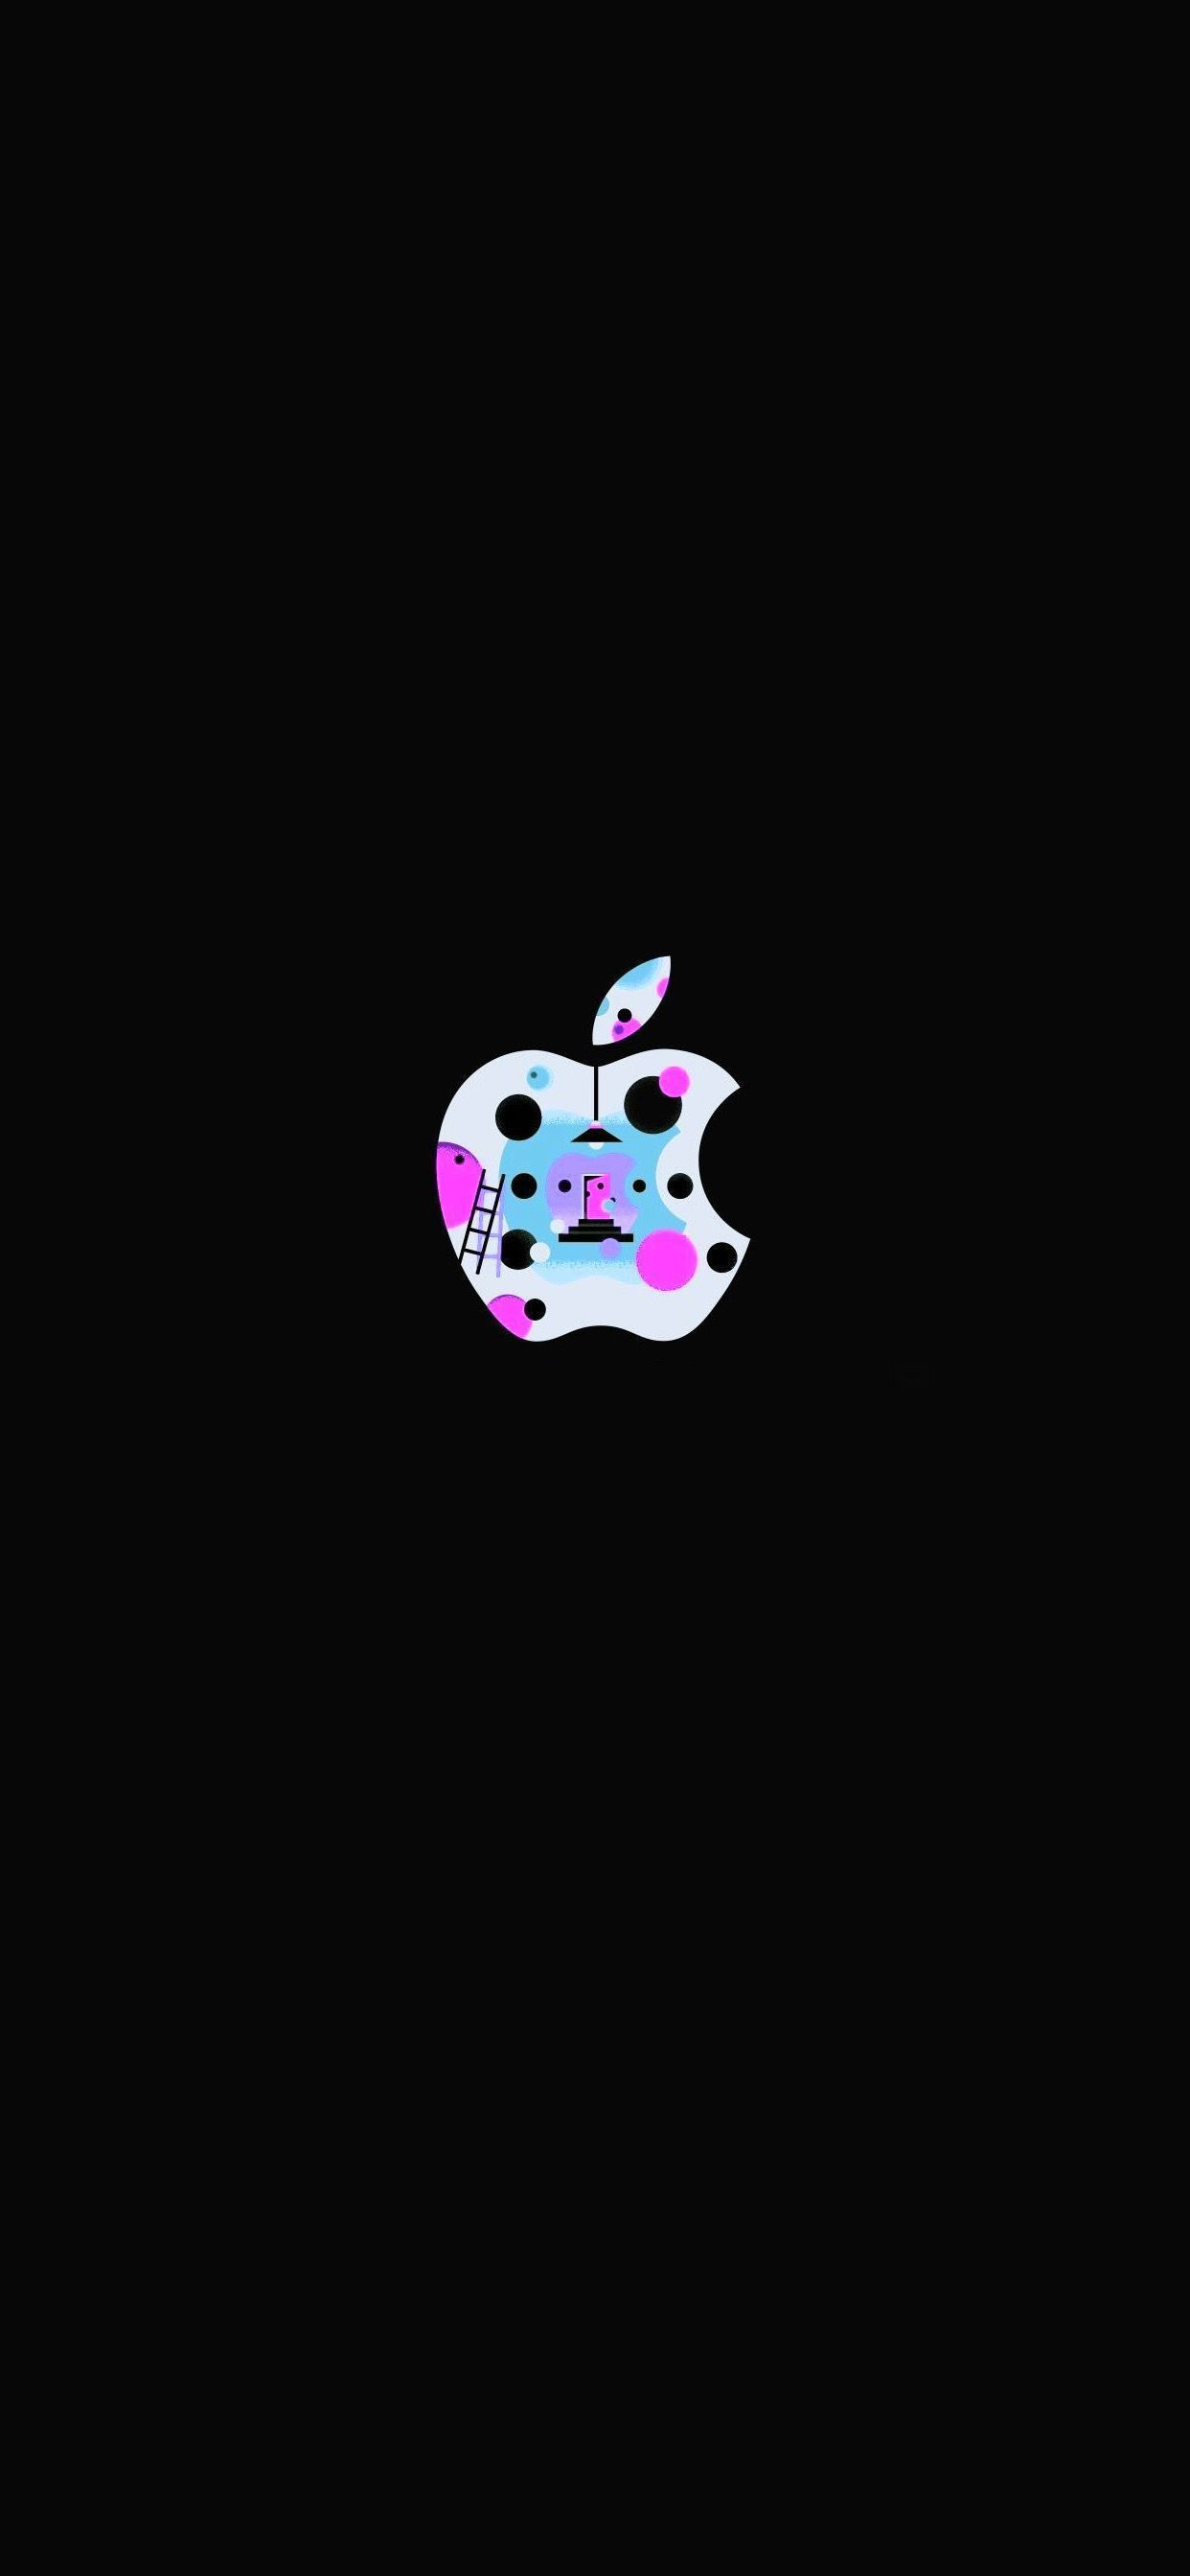 #iOS13 #iphonewallpaper #apple #logo #colorful #darkmode #ios13wallpaper #iOS13 #iphonewallpaper #apple #logo #colorful #darkmode #ios13wallpaper #iOS13 #iphonewallpaper #apple #logo #colorful #darkmode #ios13wallpaper #iOS13 #iphonewallpaper #apple #logo #colorful #darkmode #ios13wallpaper #iOS13 #iphonewallpaper #apple #logo #colorful #darkmode #ios13wallpaper #iOS13 #iphonewallpaper #apple #logo #colorful #darkmode #ios13wallpaper #iOS13 #iphonewallpaper #apple #logo #colorful #darkmode #ios1 #ios13wallpaper